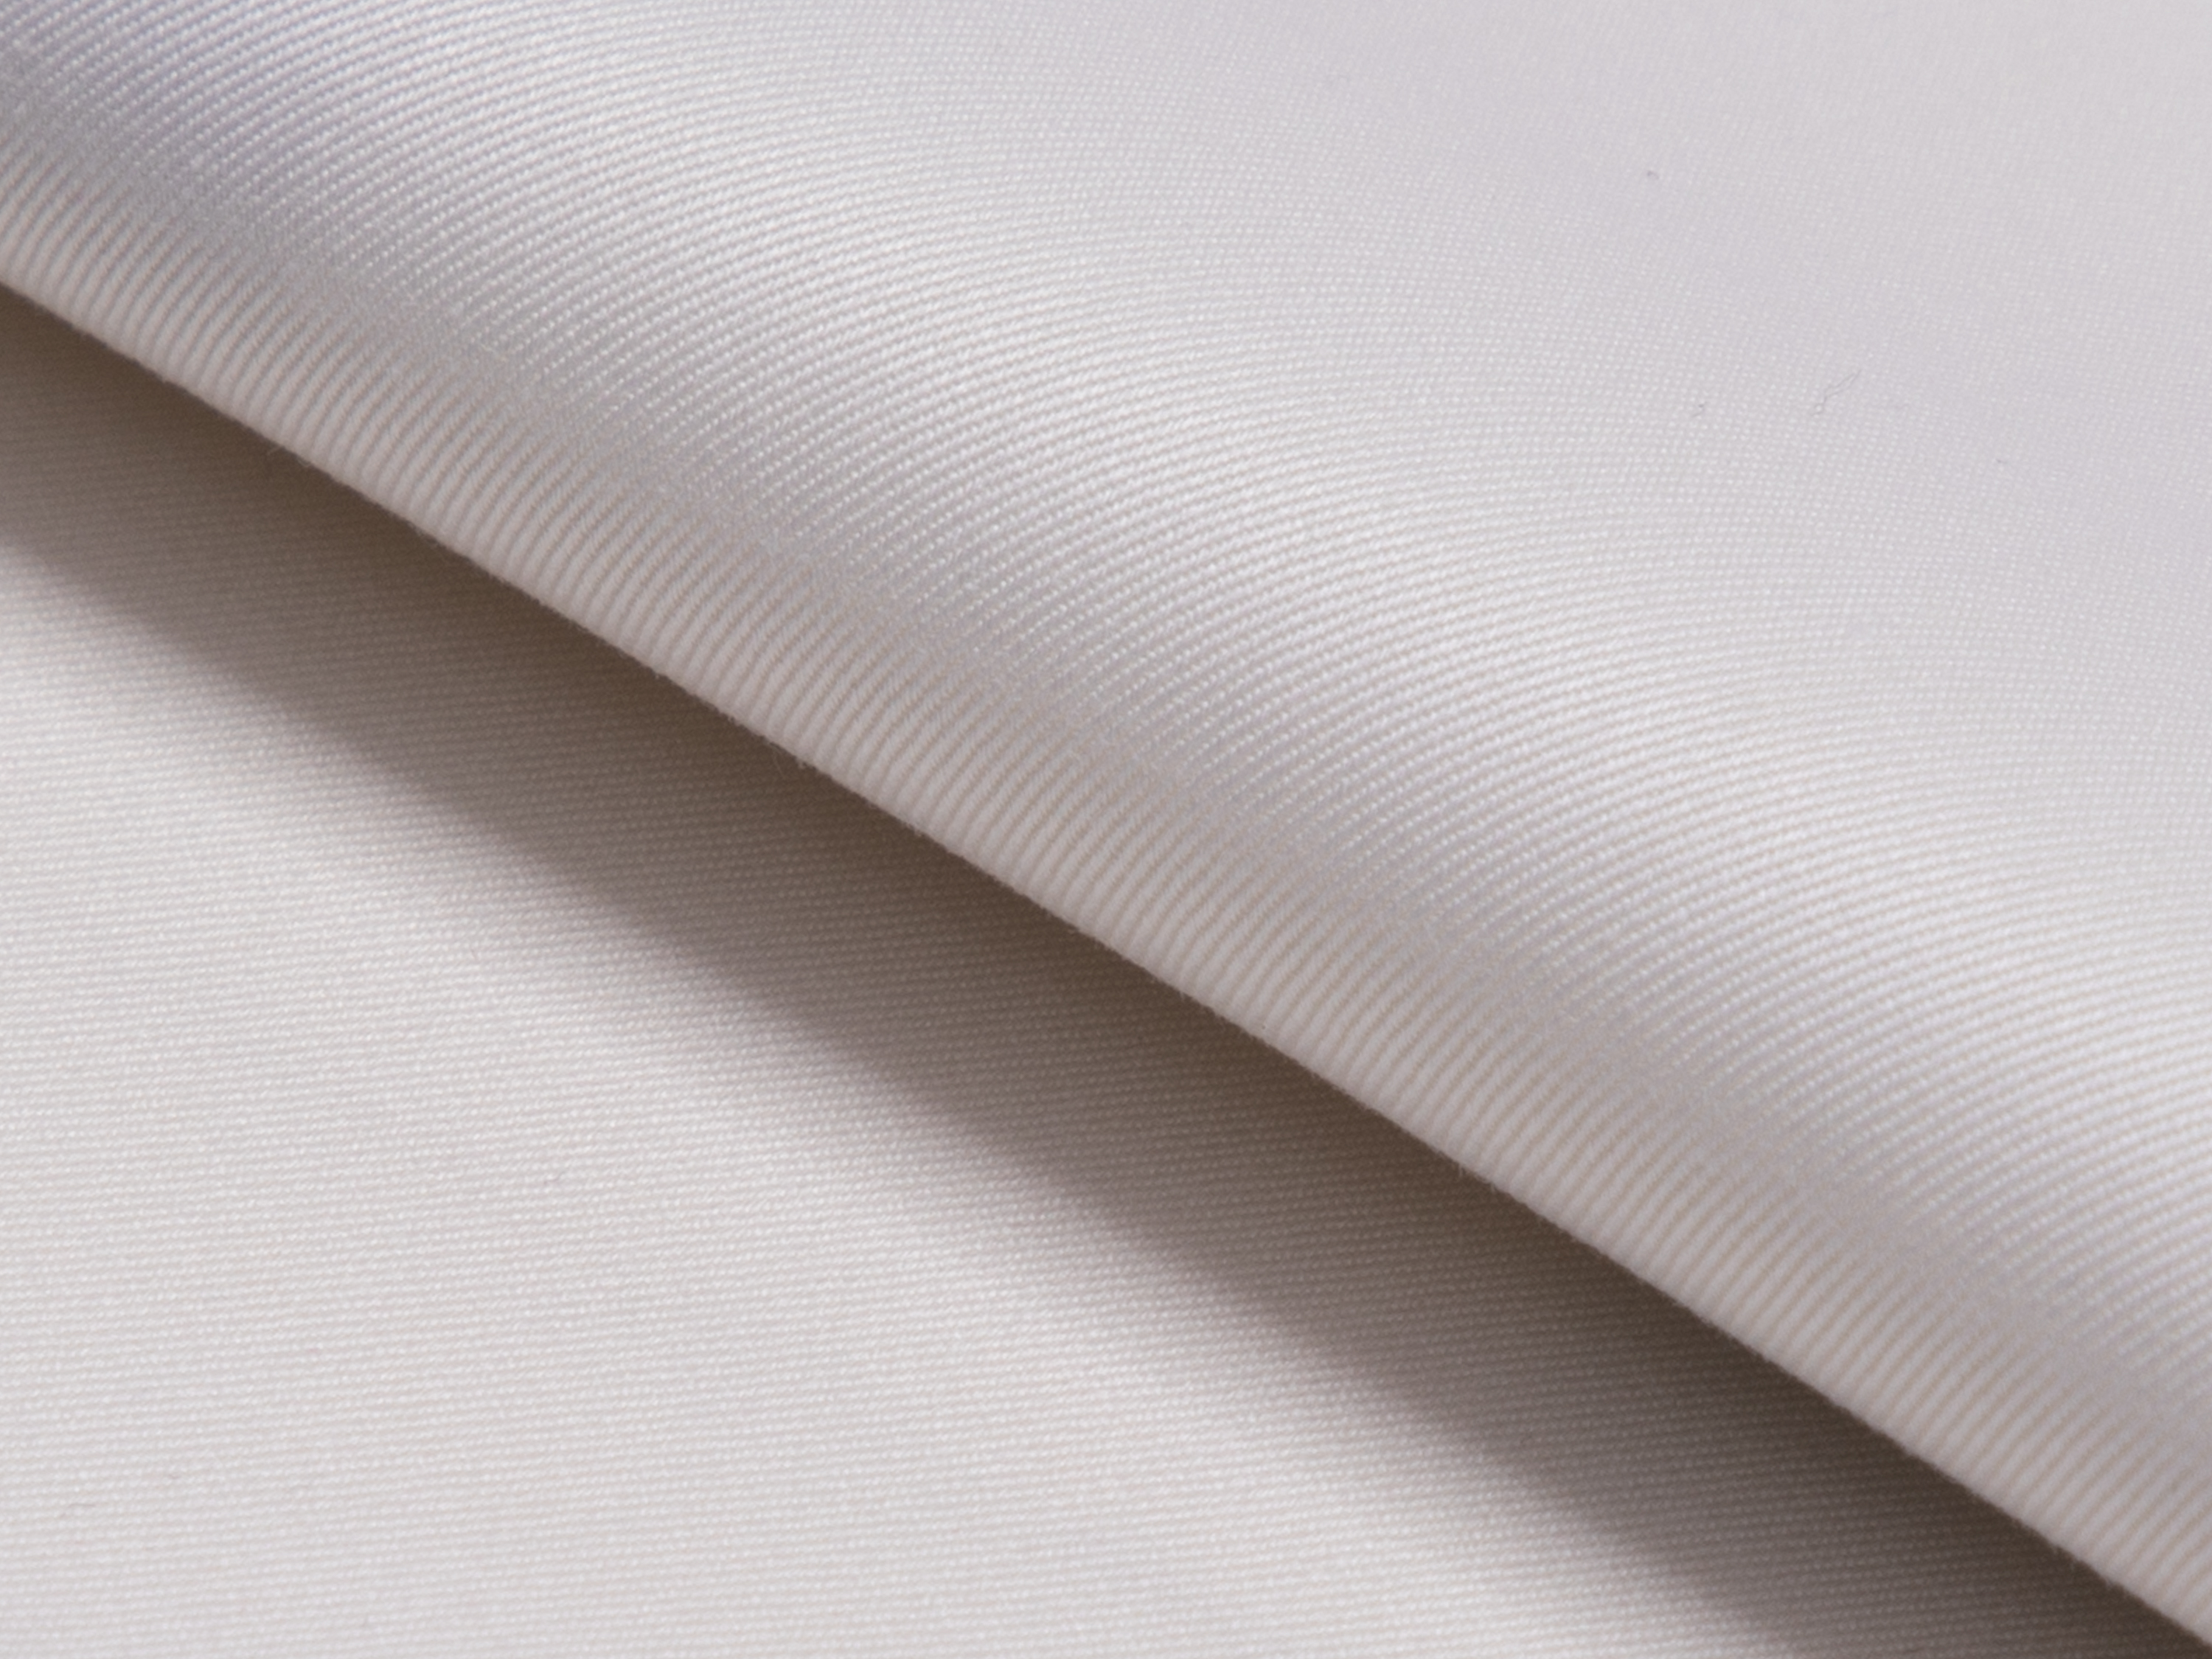 Buy tailor made shirts online - MAYFAIR (NEW) - Twill Cream